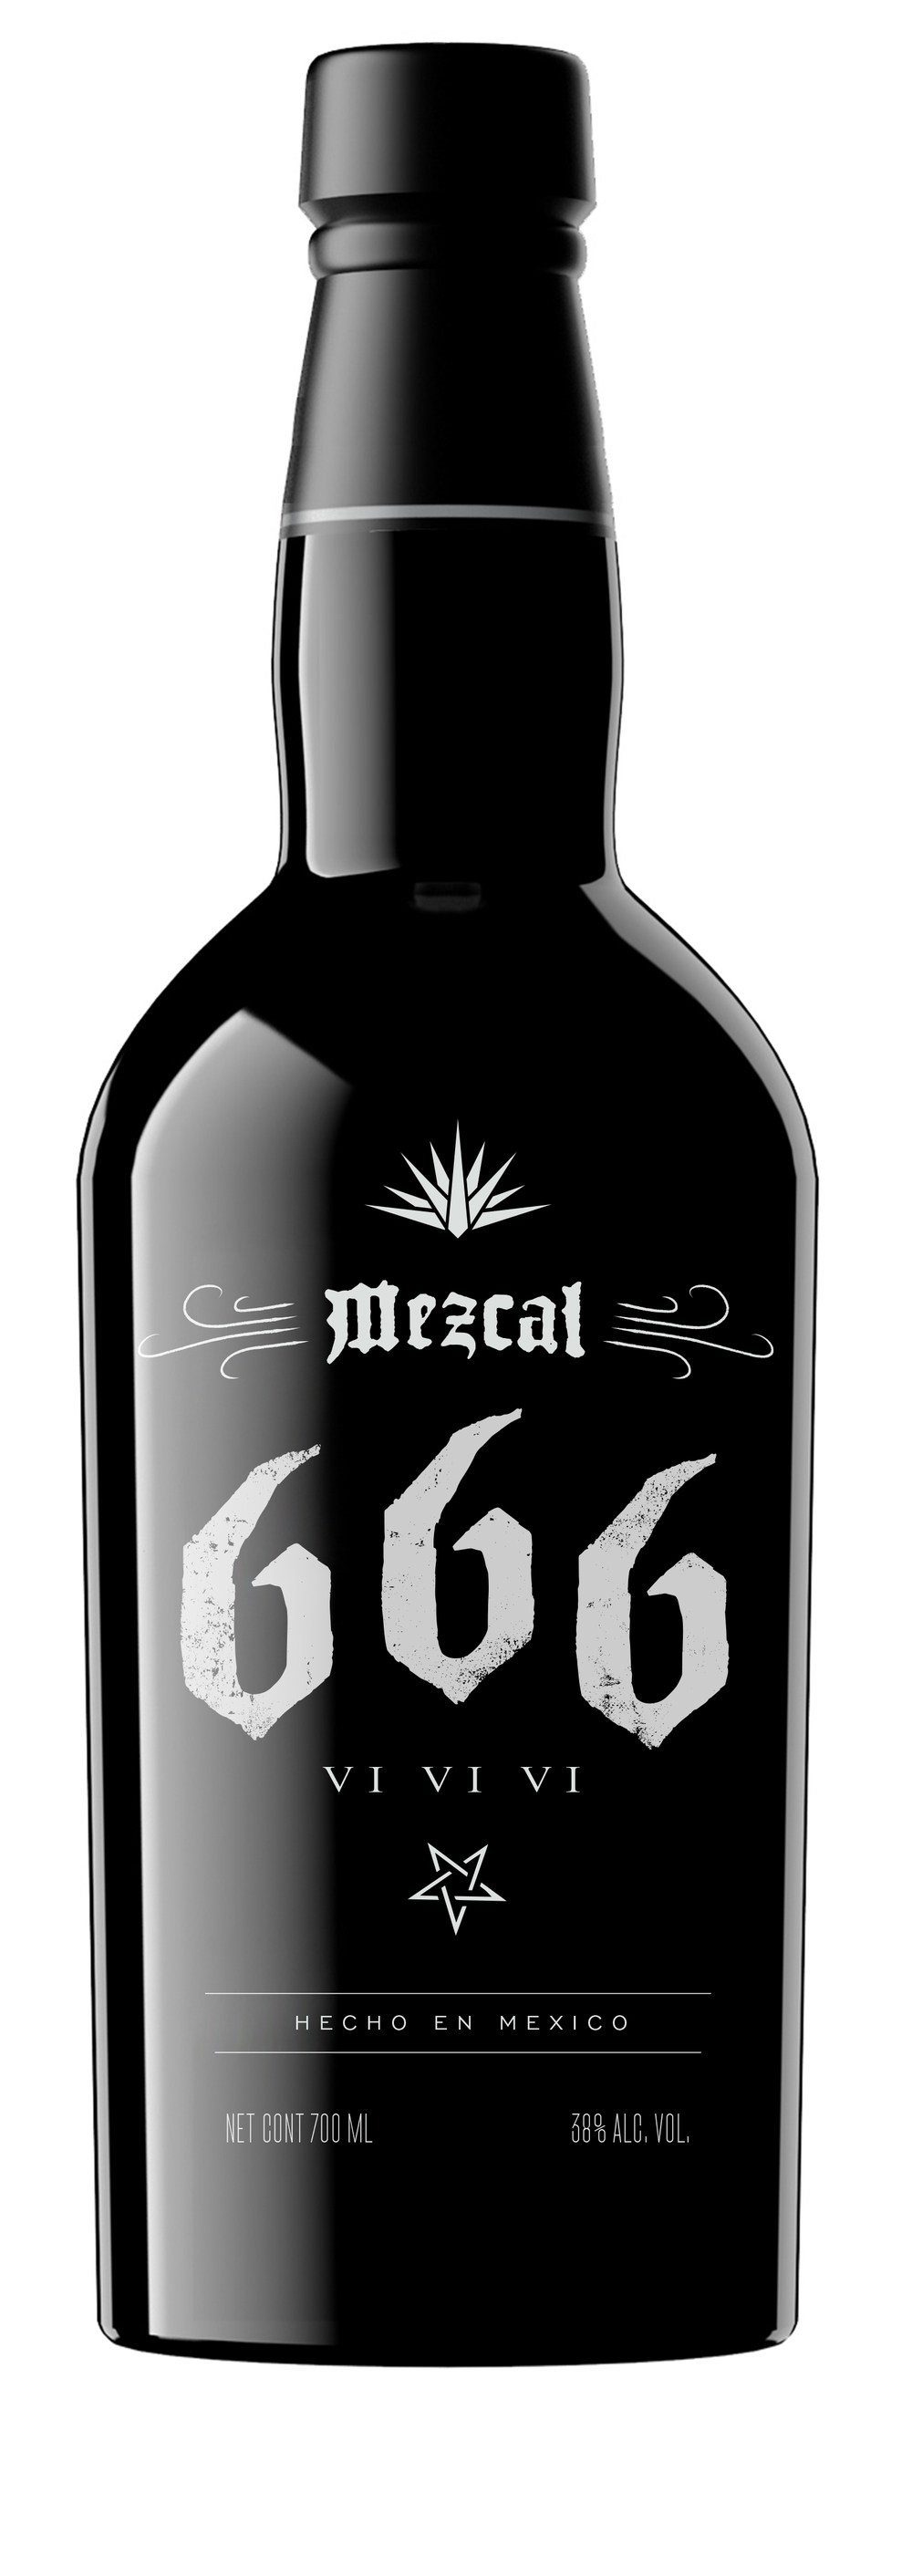 Mezcal 666 Black Bottles2 opt2_0007_666 distress.jpg